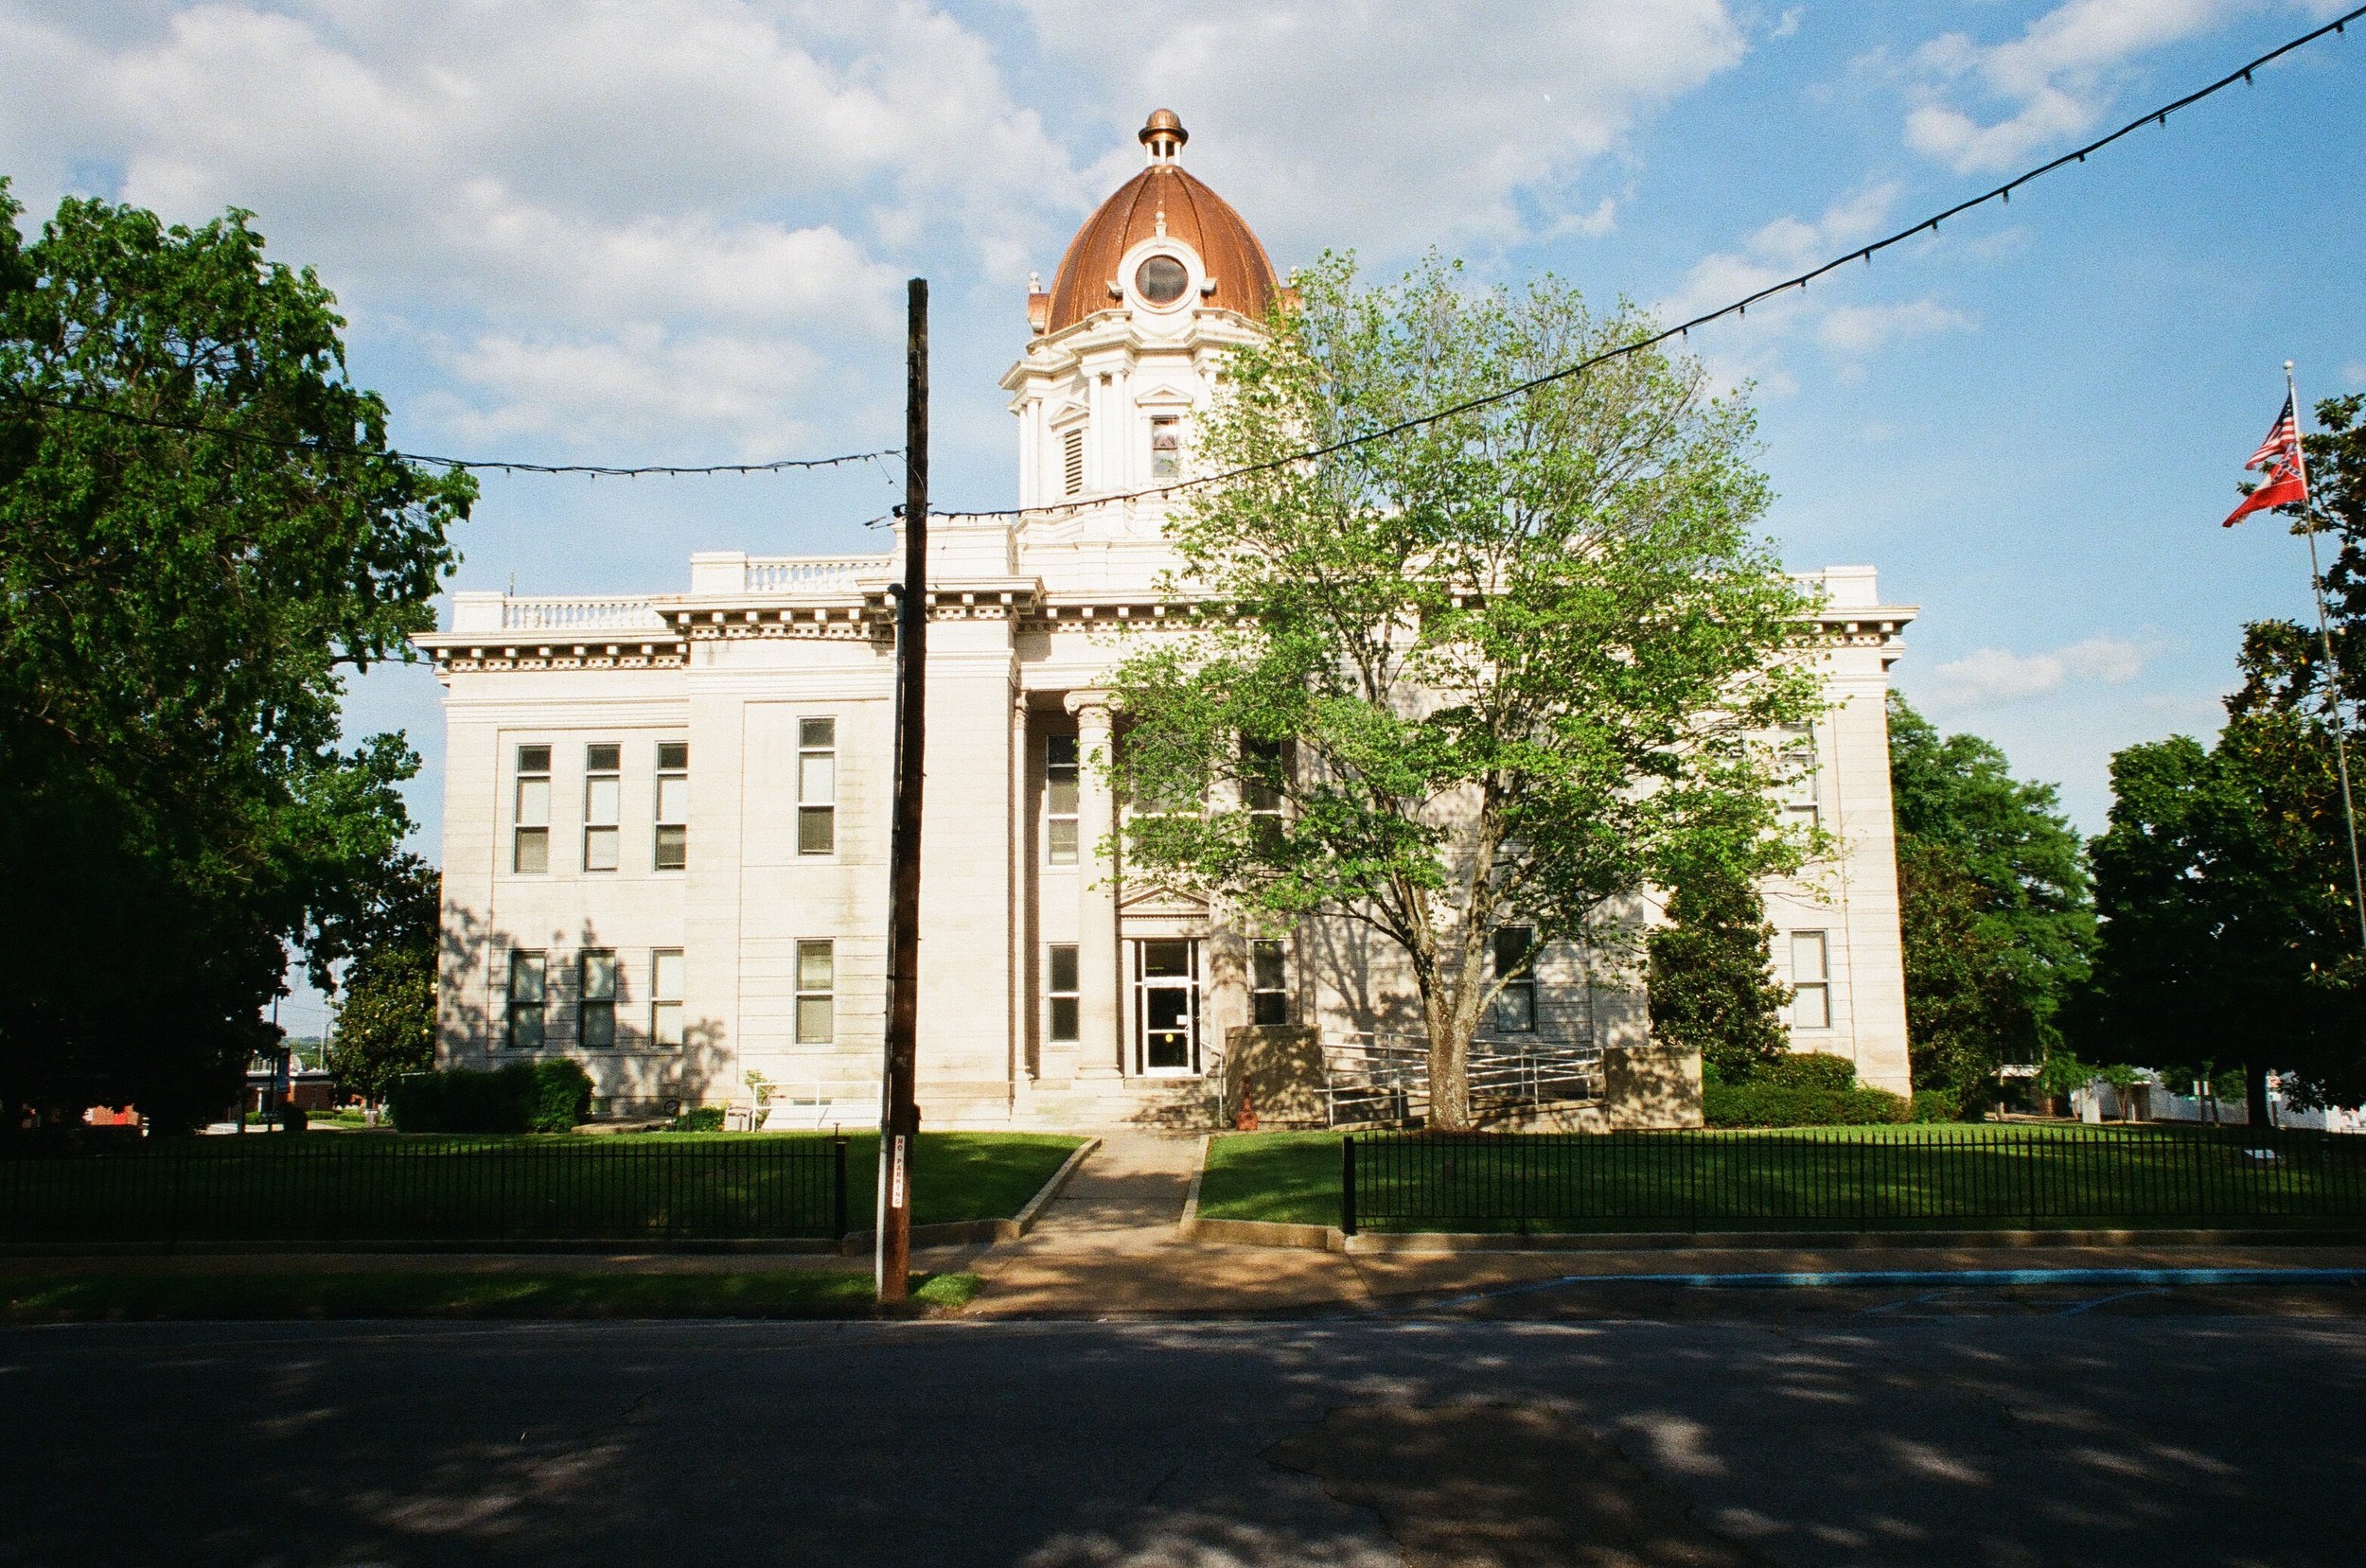 The Lee County courthouse in downtown Tupelo was built in 1915. Just a couple blocks away were the Tupelo Fairgrounds where Elvis would perform a much-heralded homecoming show in 1956.